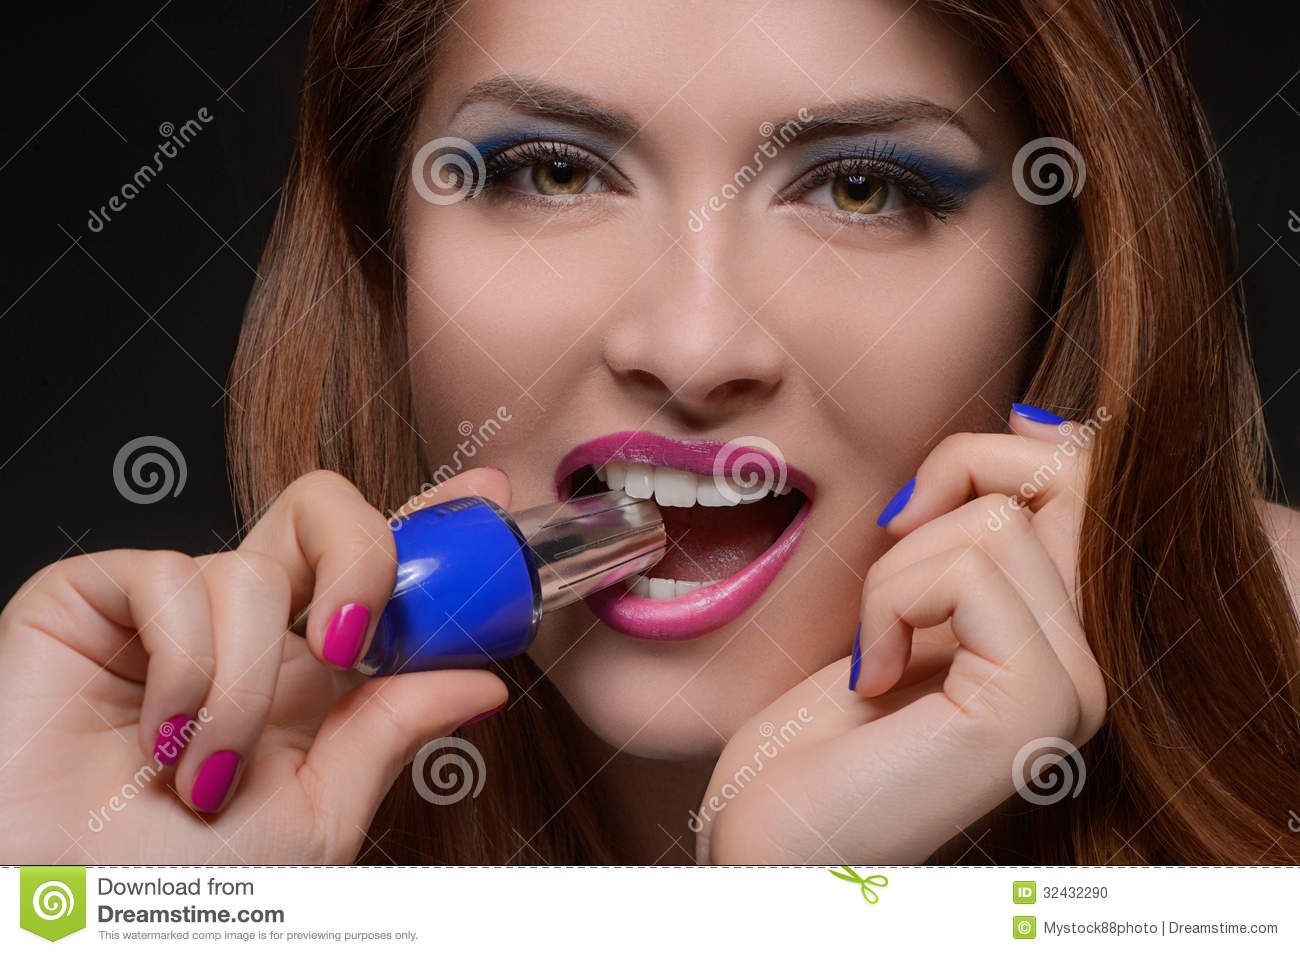 I choose the blue one! Portrait of beautiful women holding a nail polish in her teeth